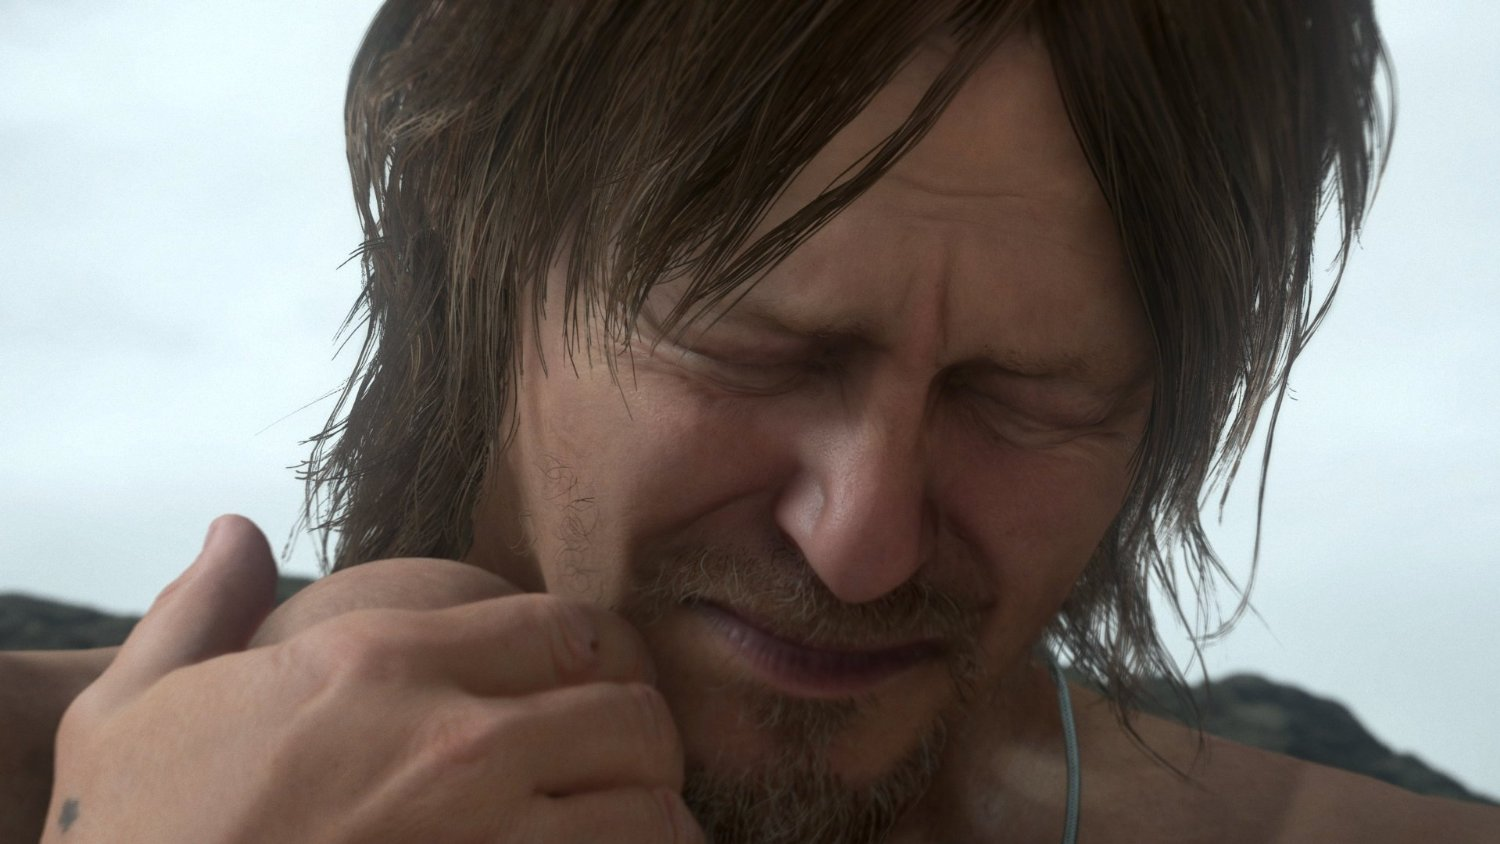 Death Stranding Reportedly Casts A List Actor Alongside Norman Reedus death stranding trailer with norman reedus blows up internet